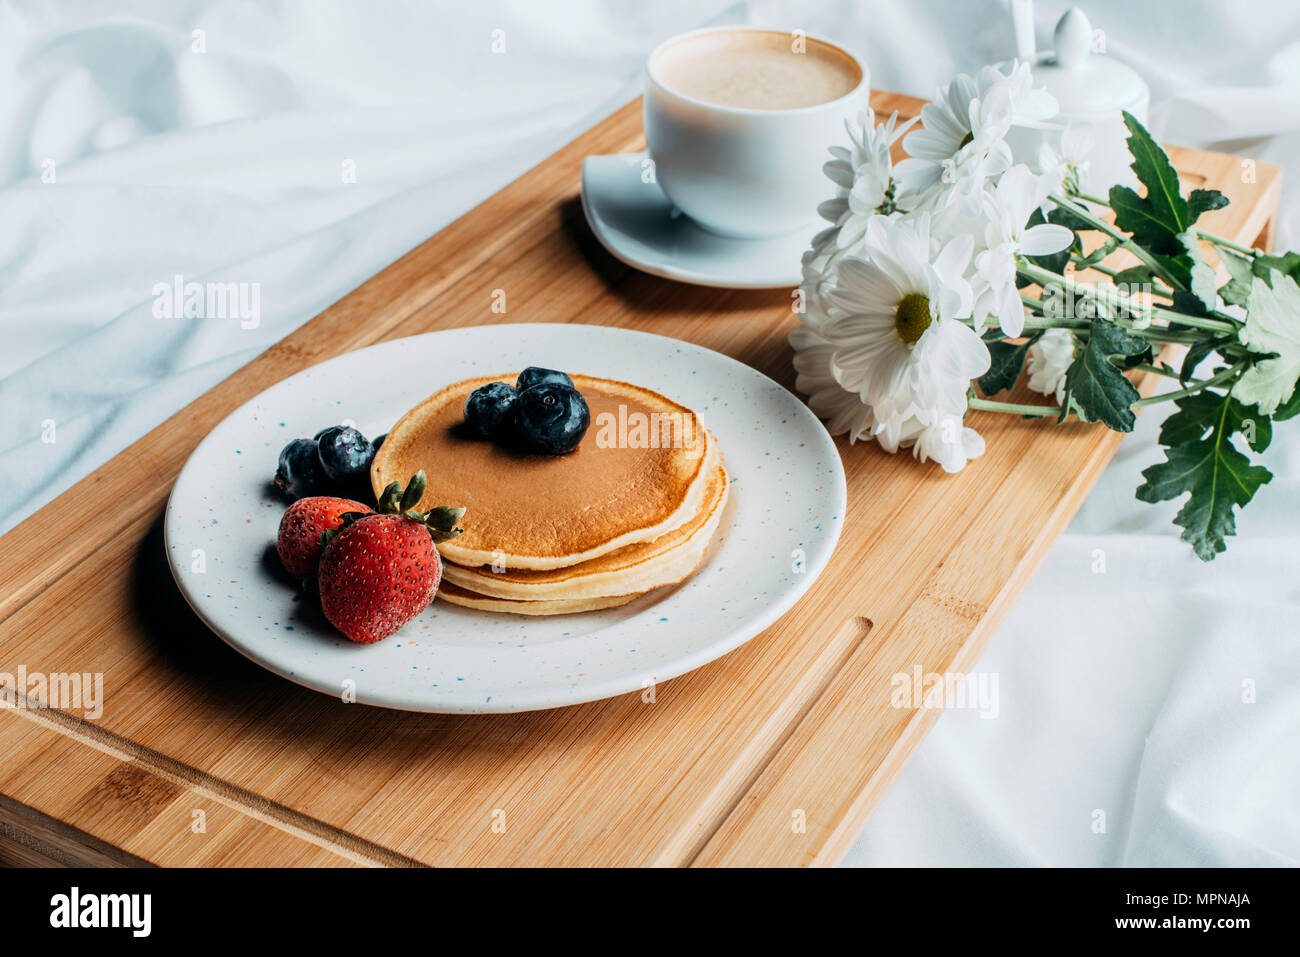 breakfast in bed with pancakes and coffee on wooden tray - Stock Image